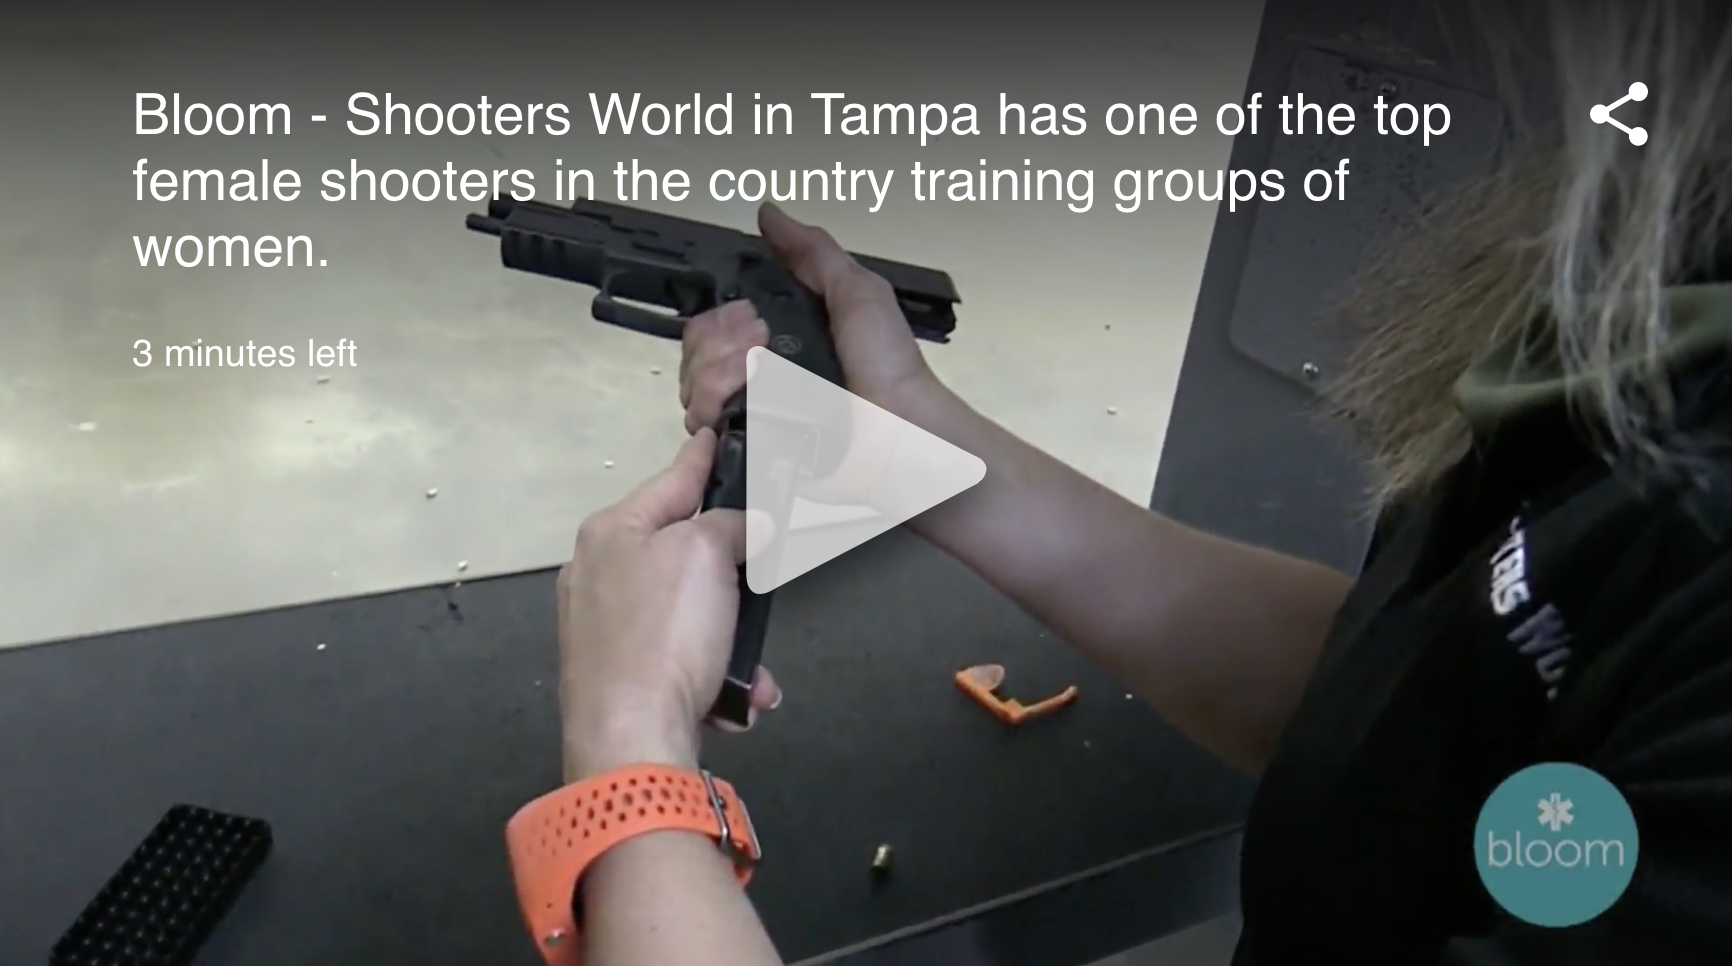 Shooters word in tampa has one of the top female shooters in the country